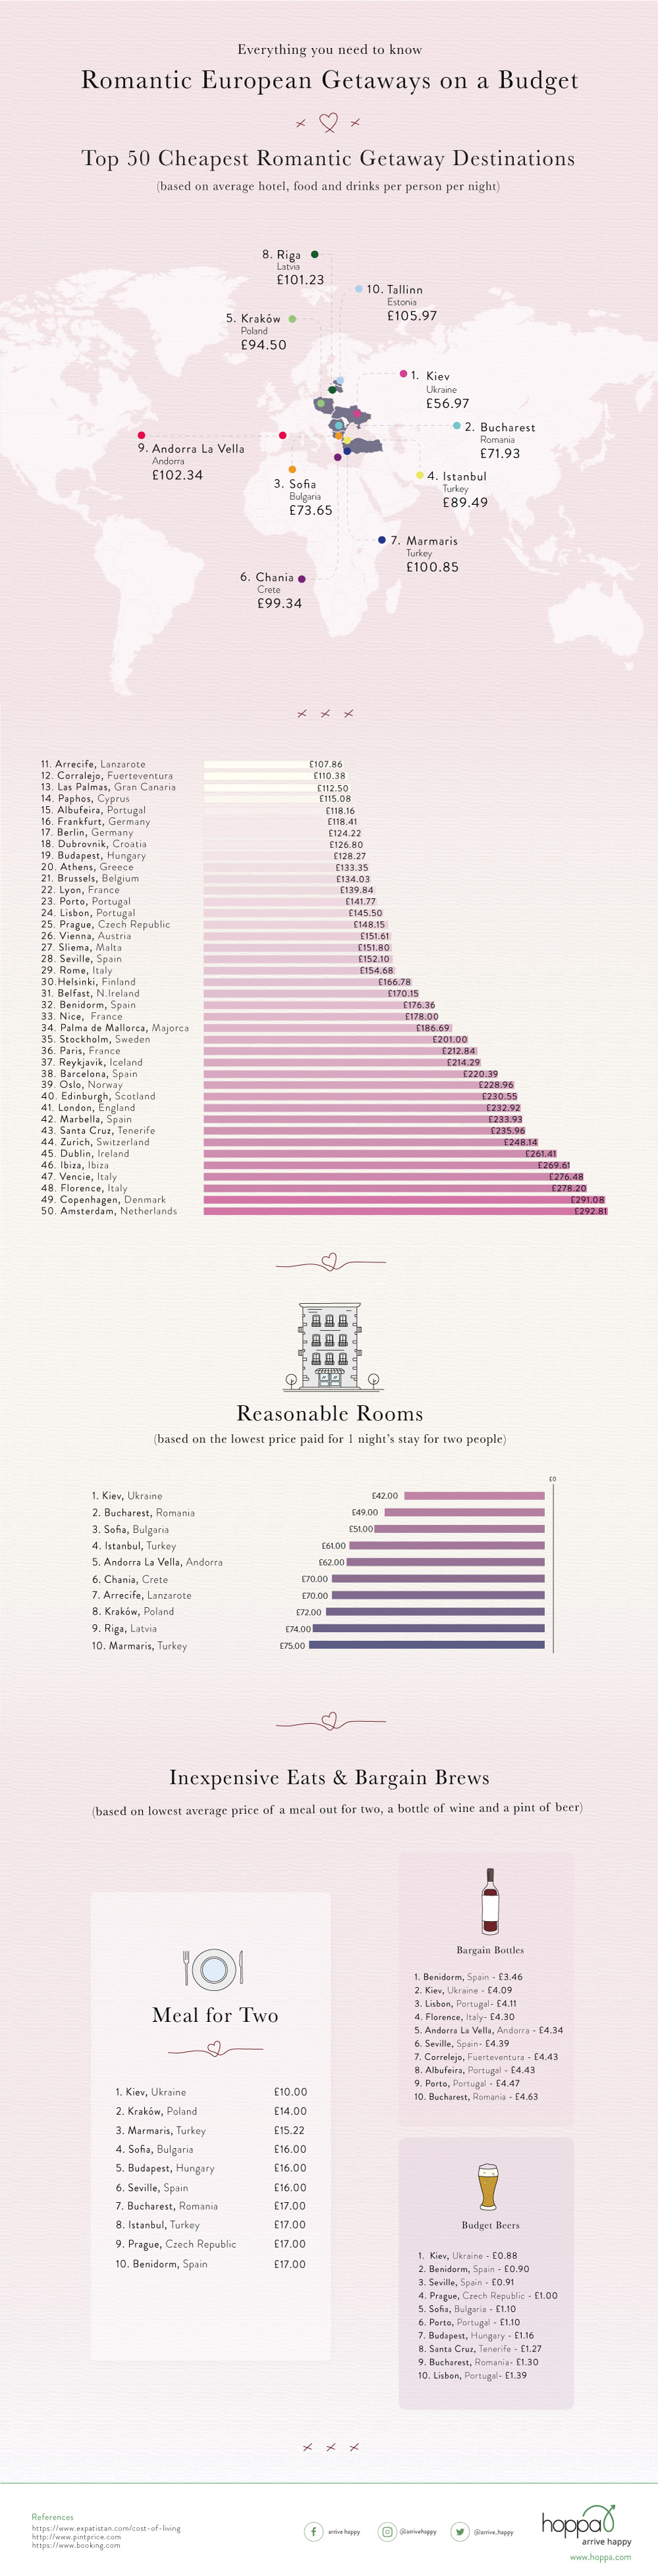 Romancing in Europe: Who Says You Need Lots of Money?! - Infographic